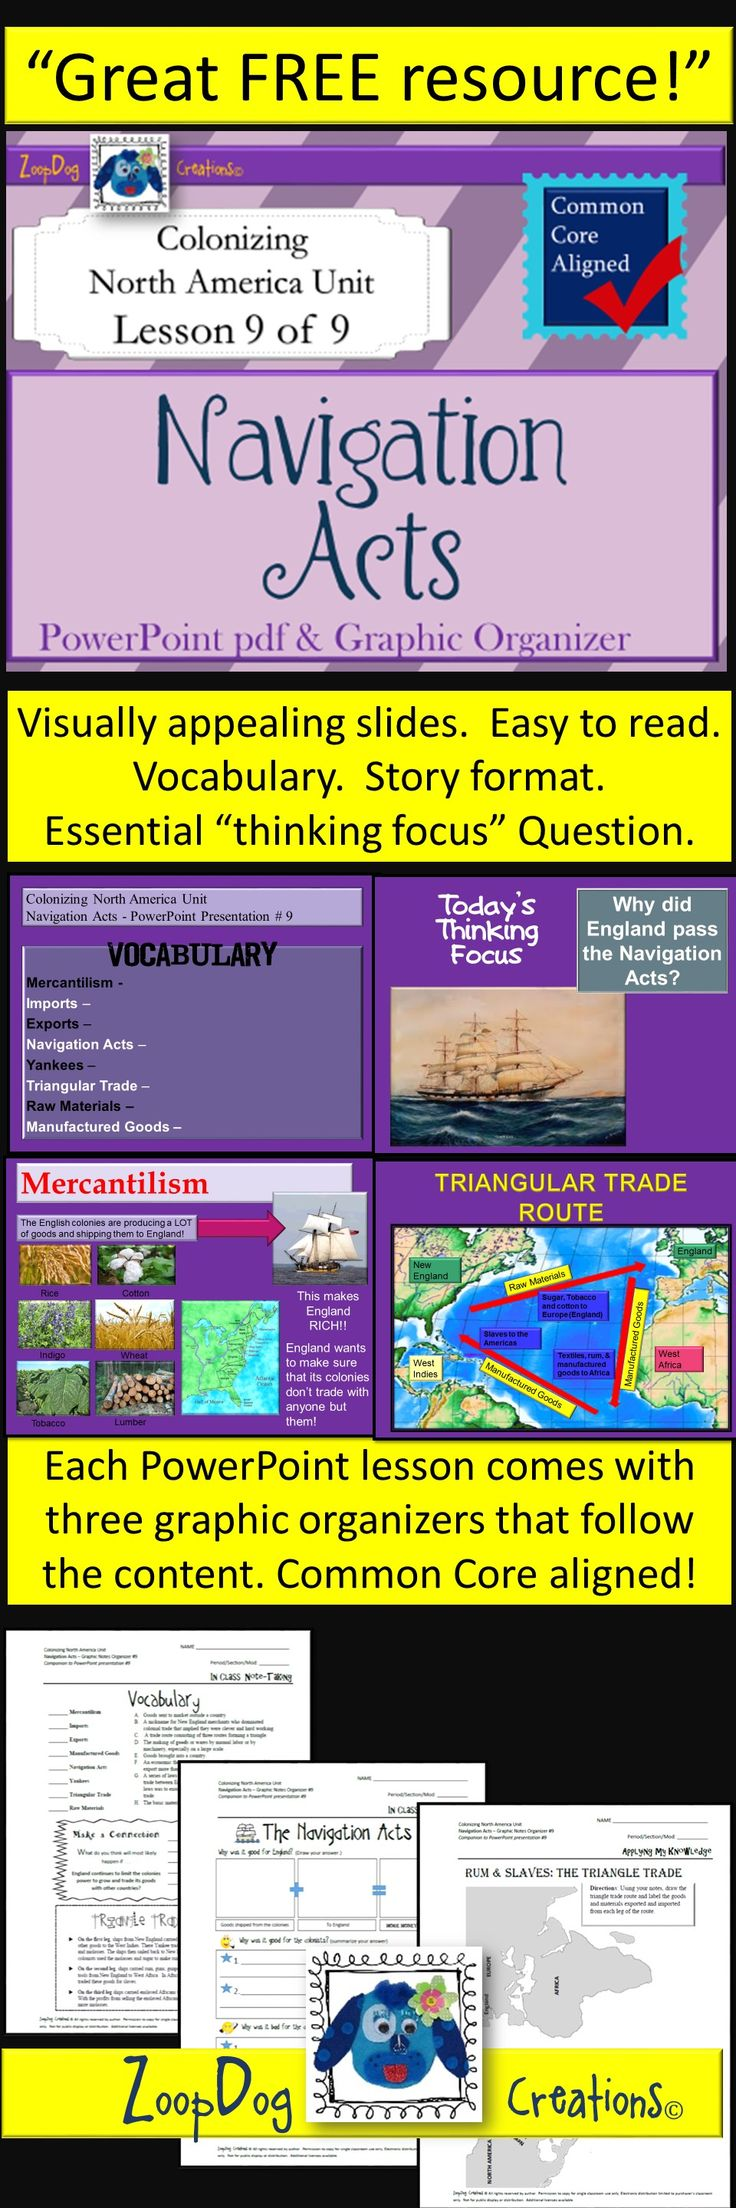 **FREE**  Navigation Acts PowerPoint and graphic organizers!  Visually appealing and easy to understand for your middle school students!  Download your copy today!